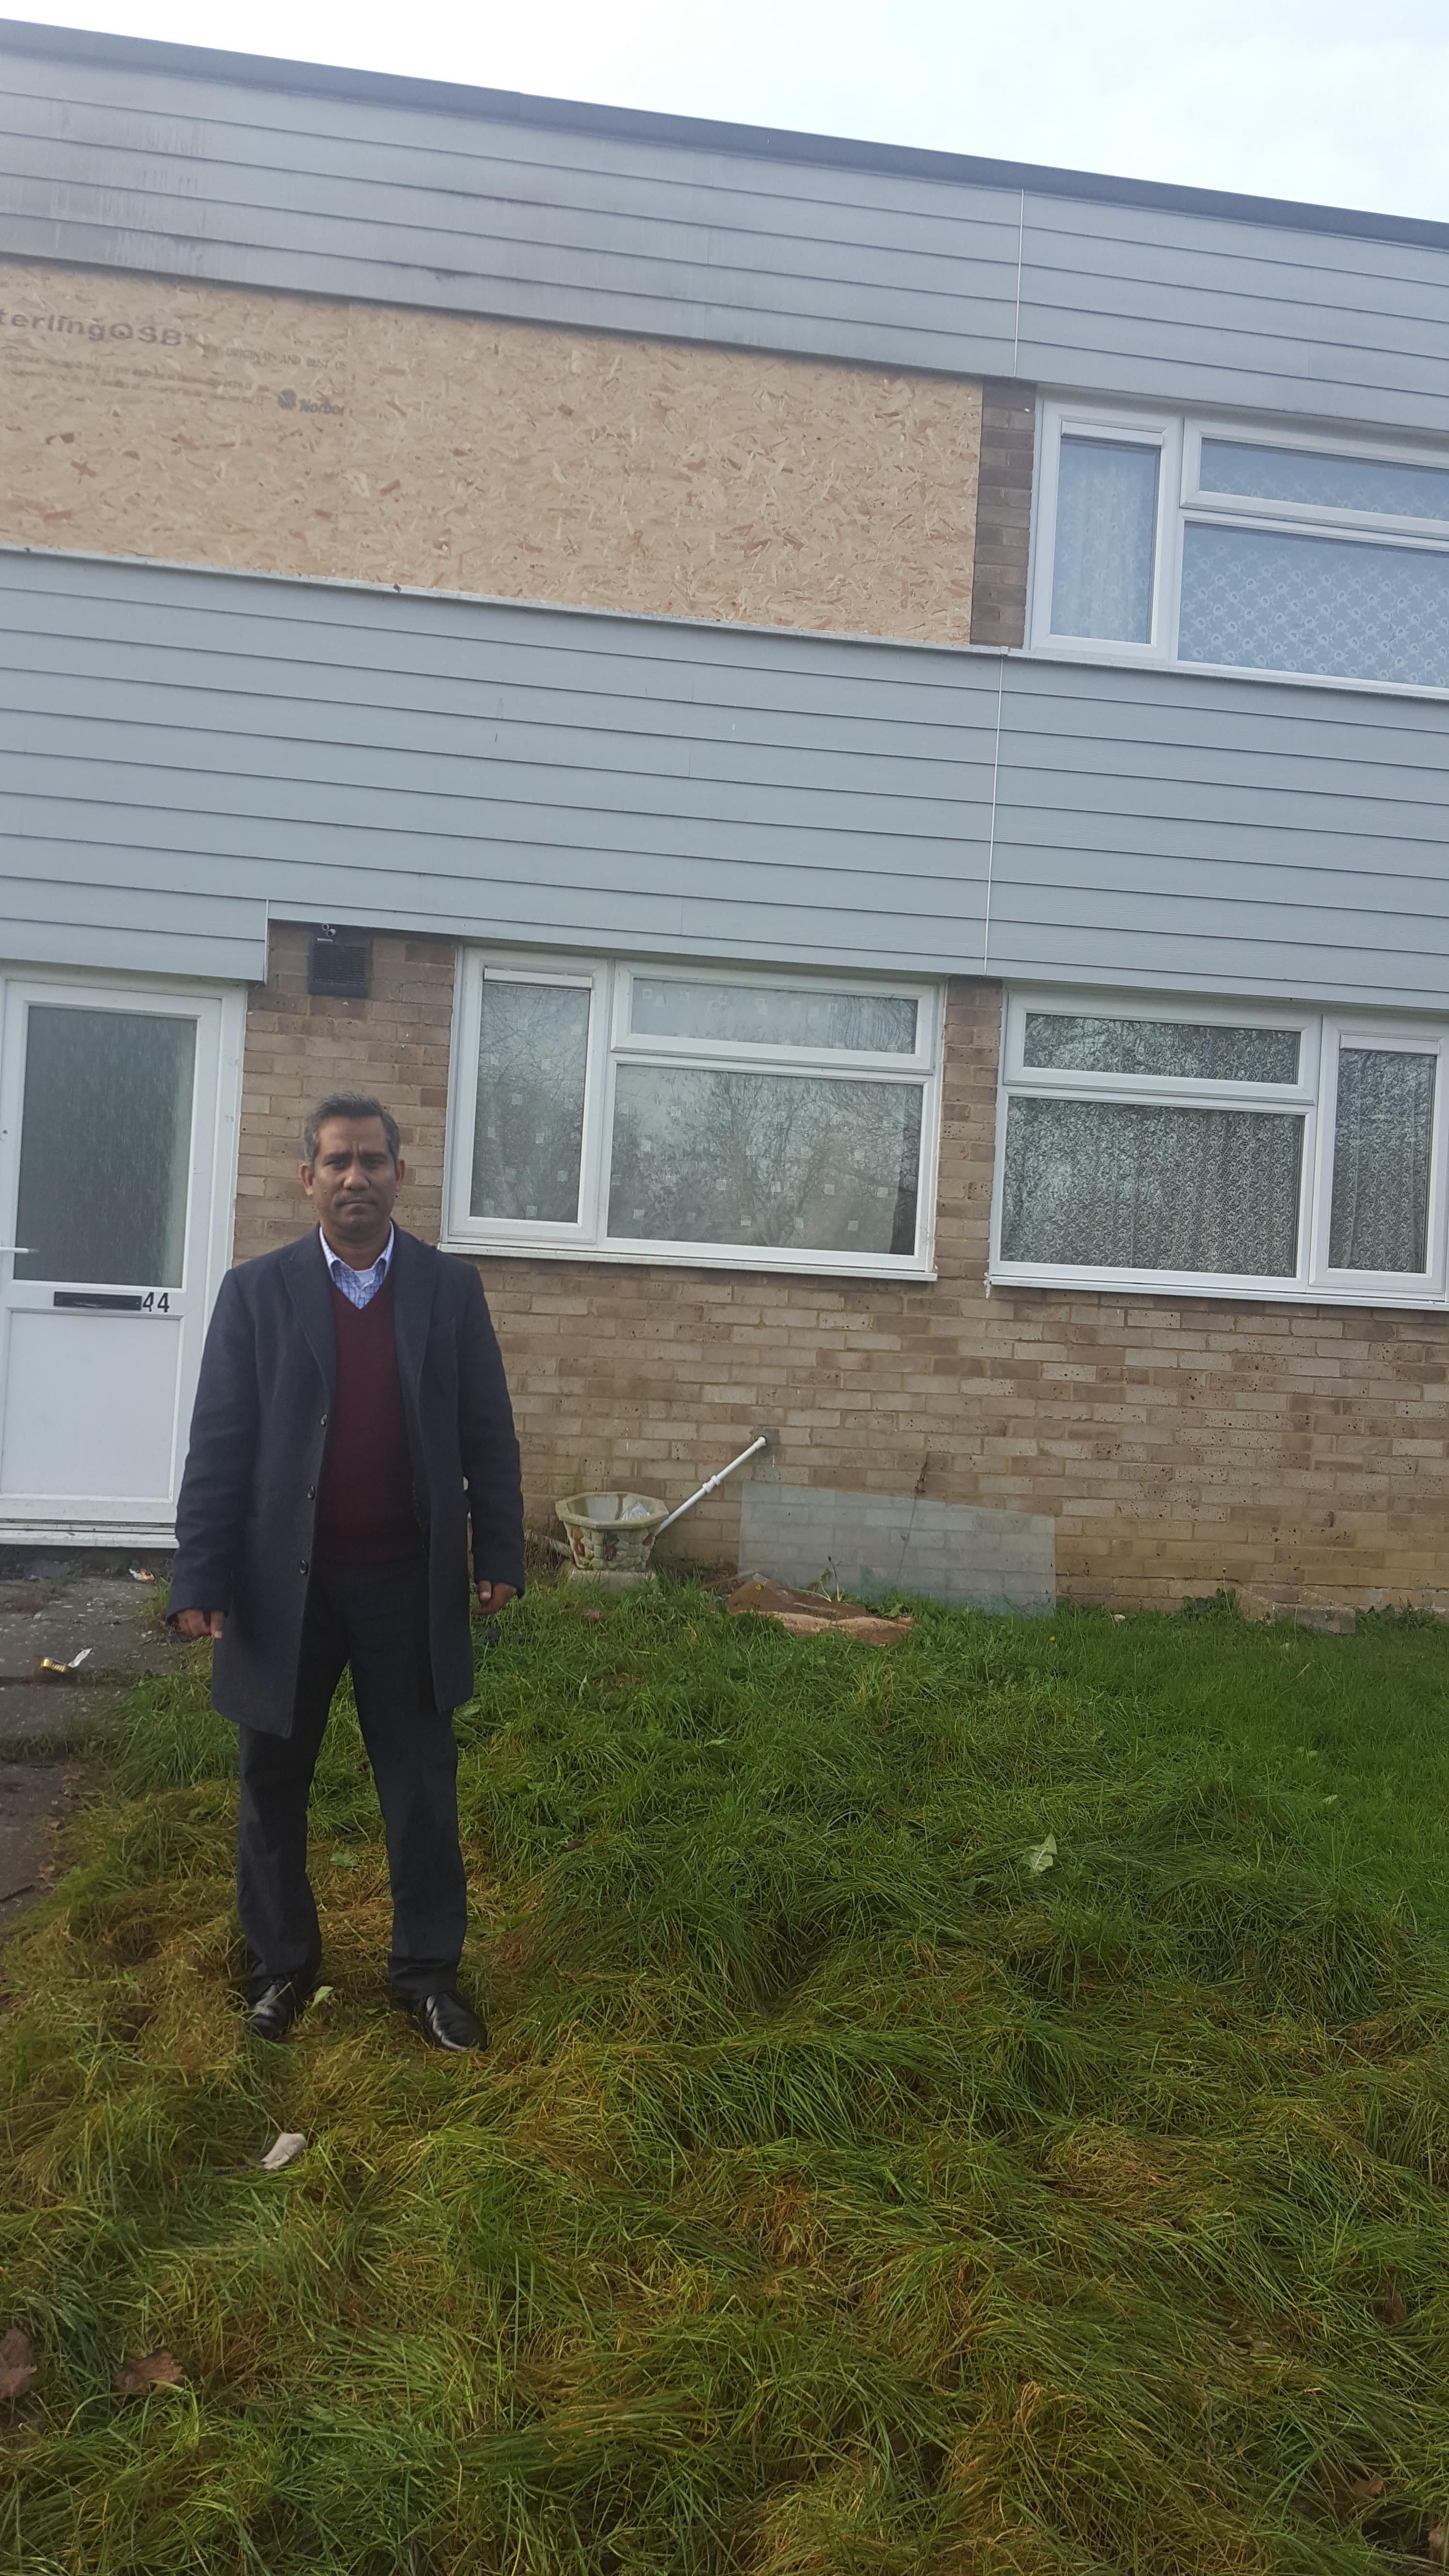 Cllr_Khan_visits_location_of_the_fire..jpg